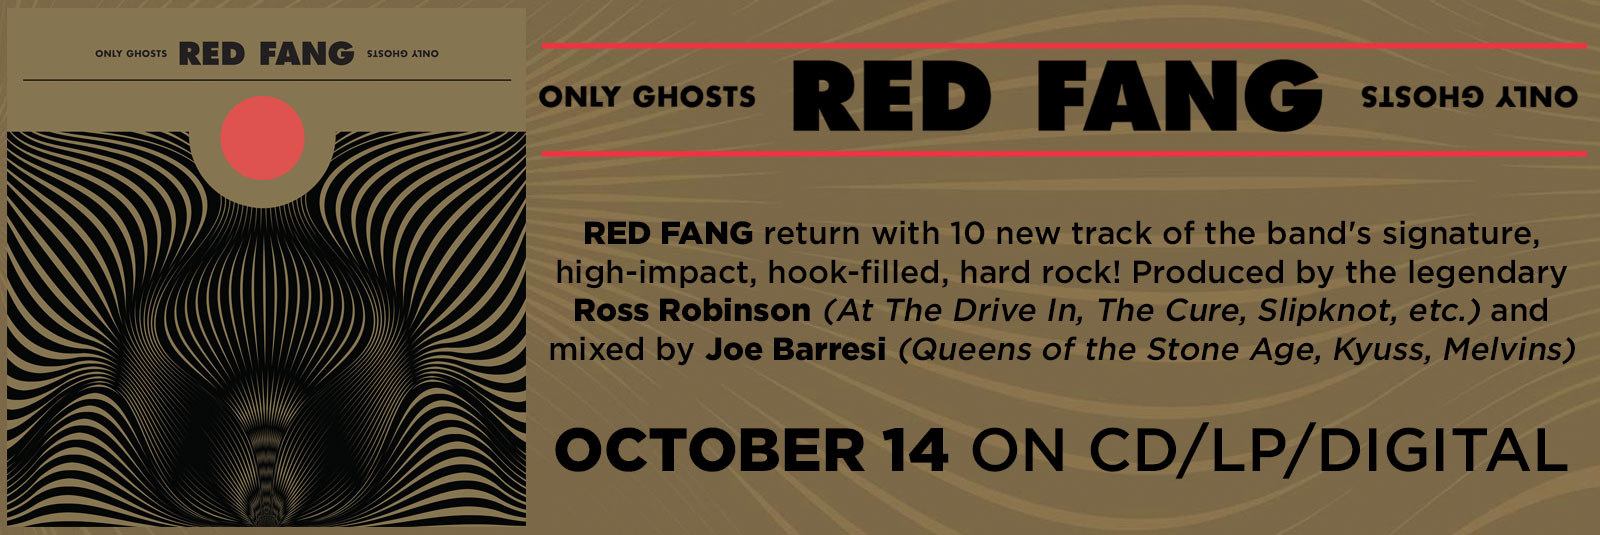 red-fang-only-ghosts-new-album-2016-relapse-records